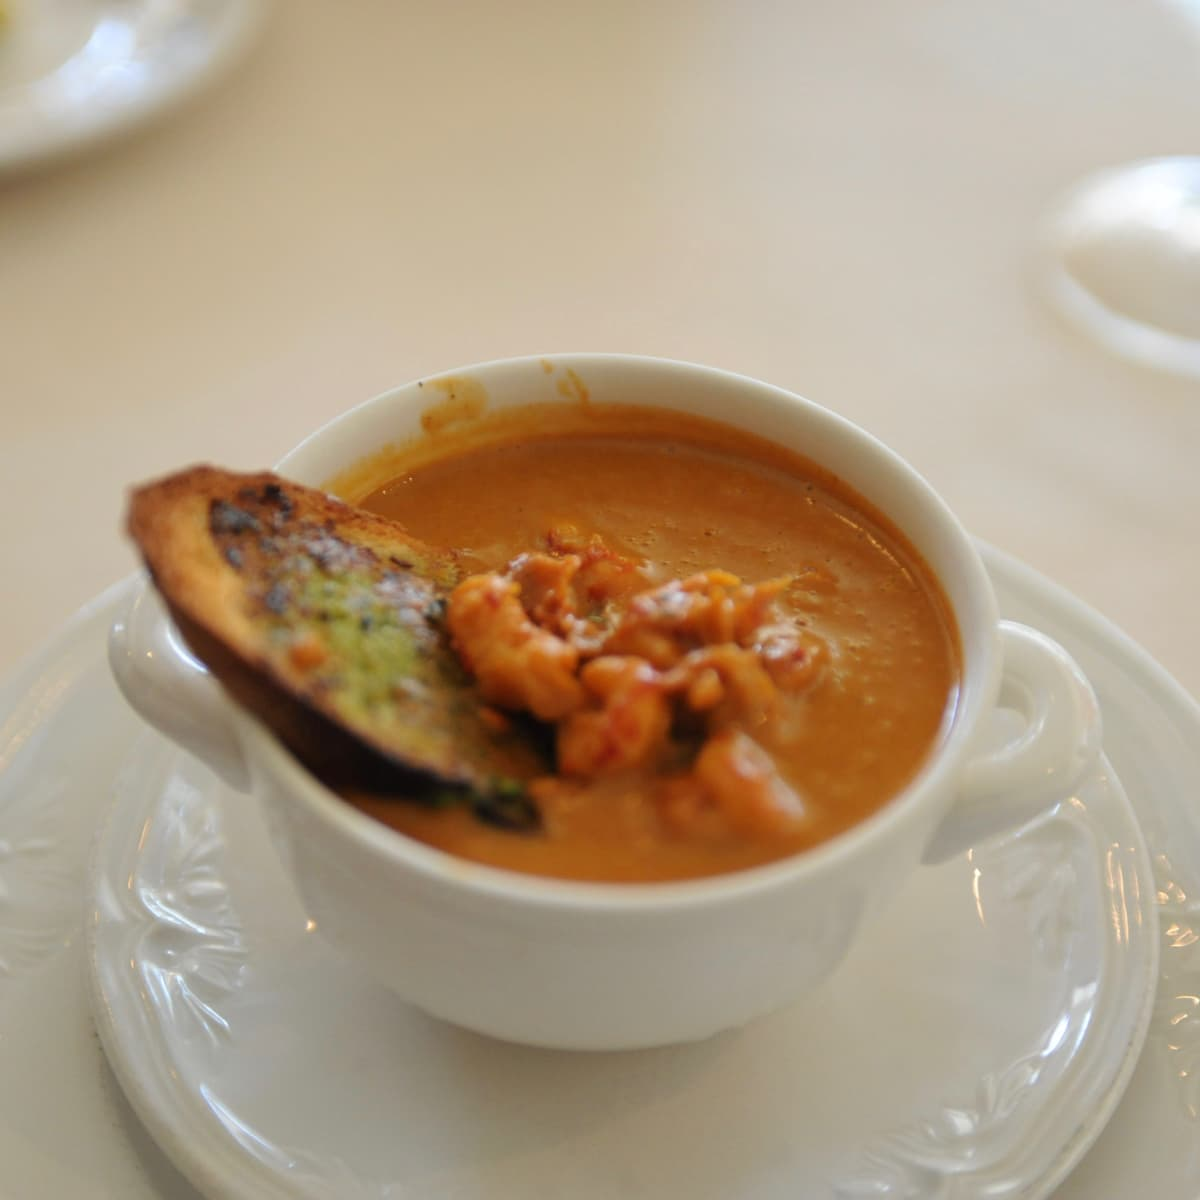 Manor House crawfish bisque